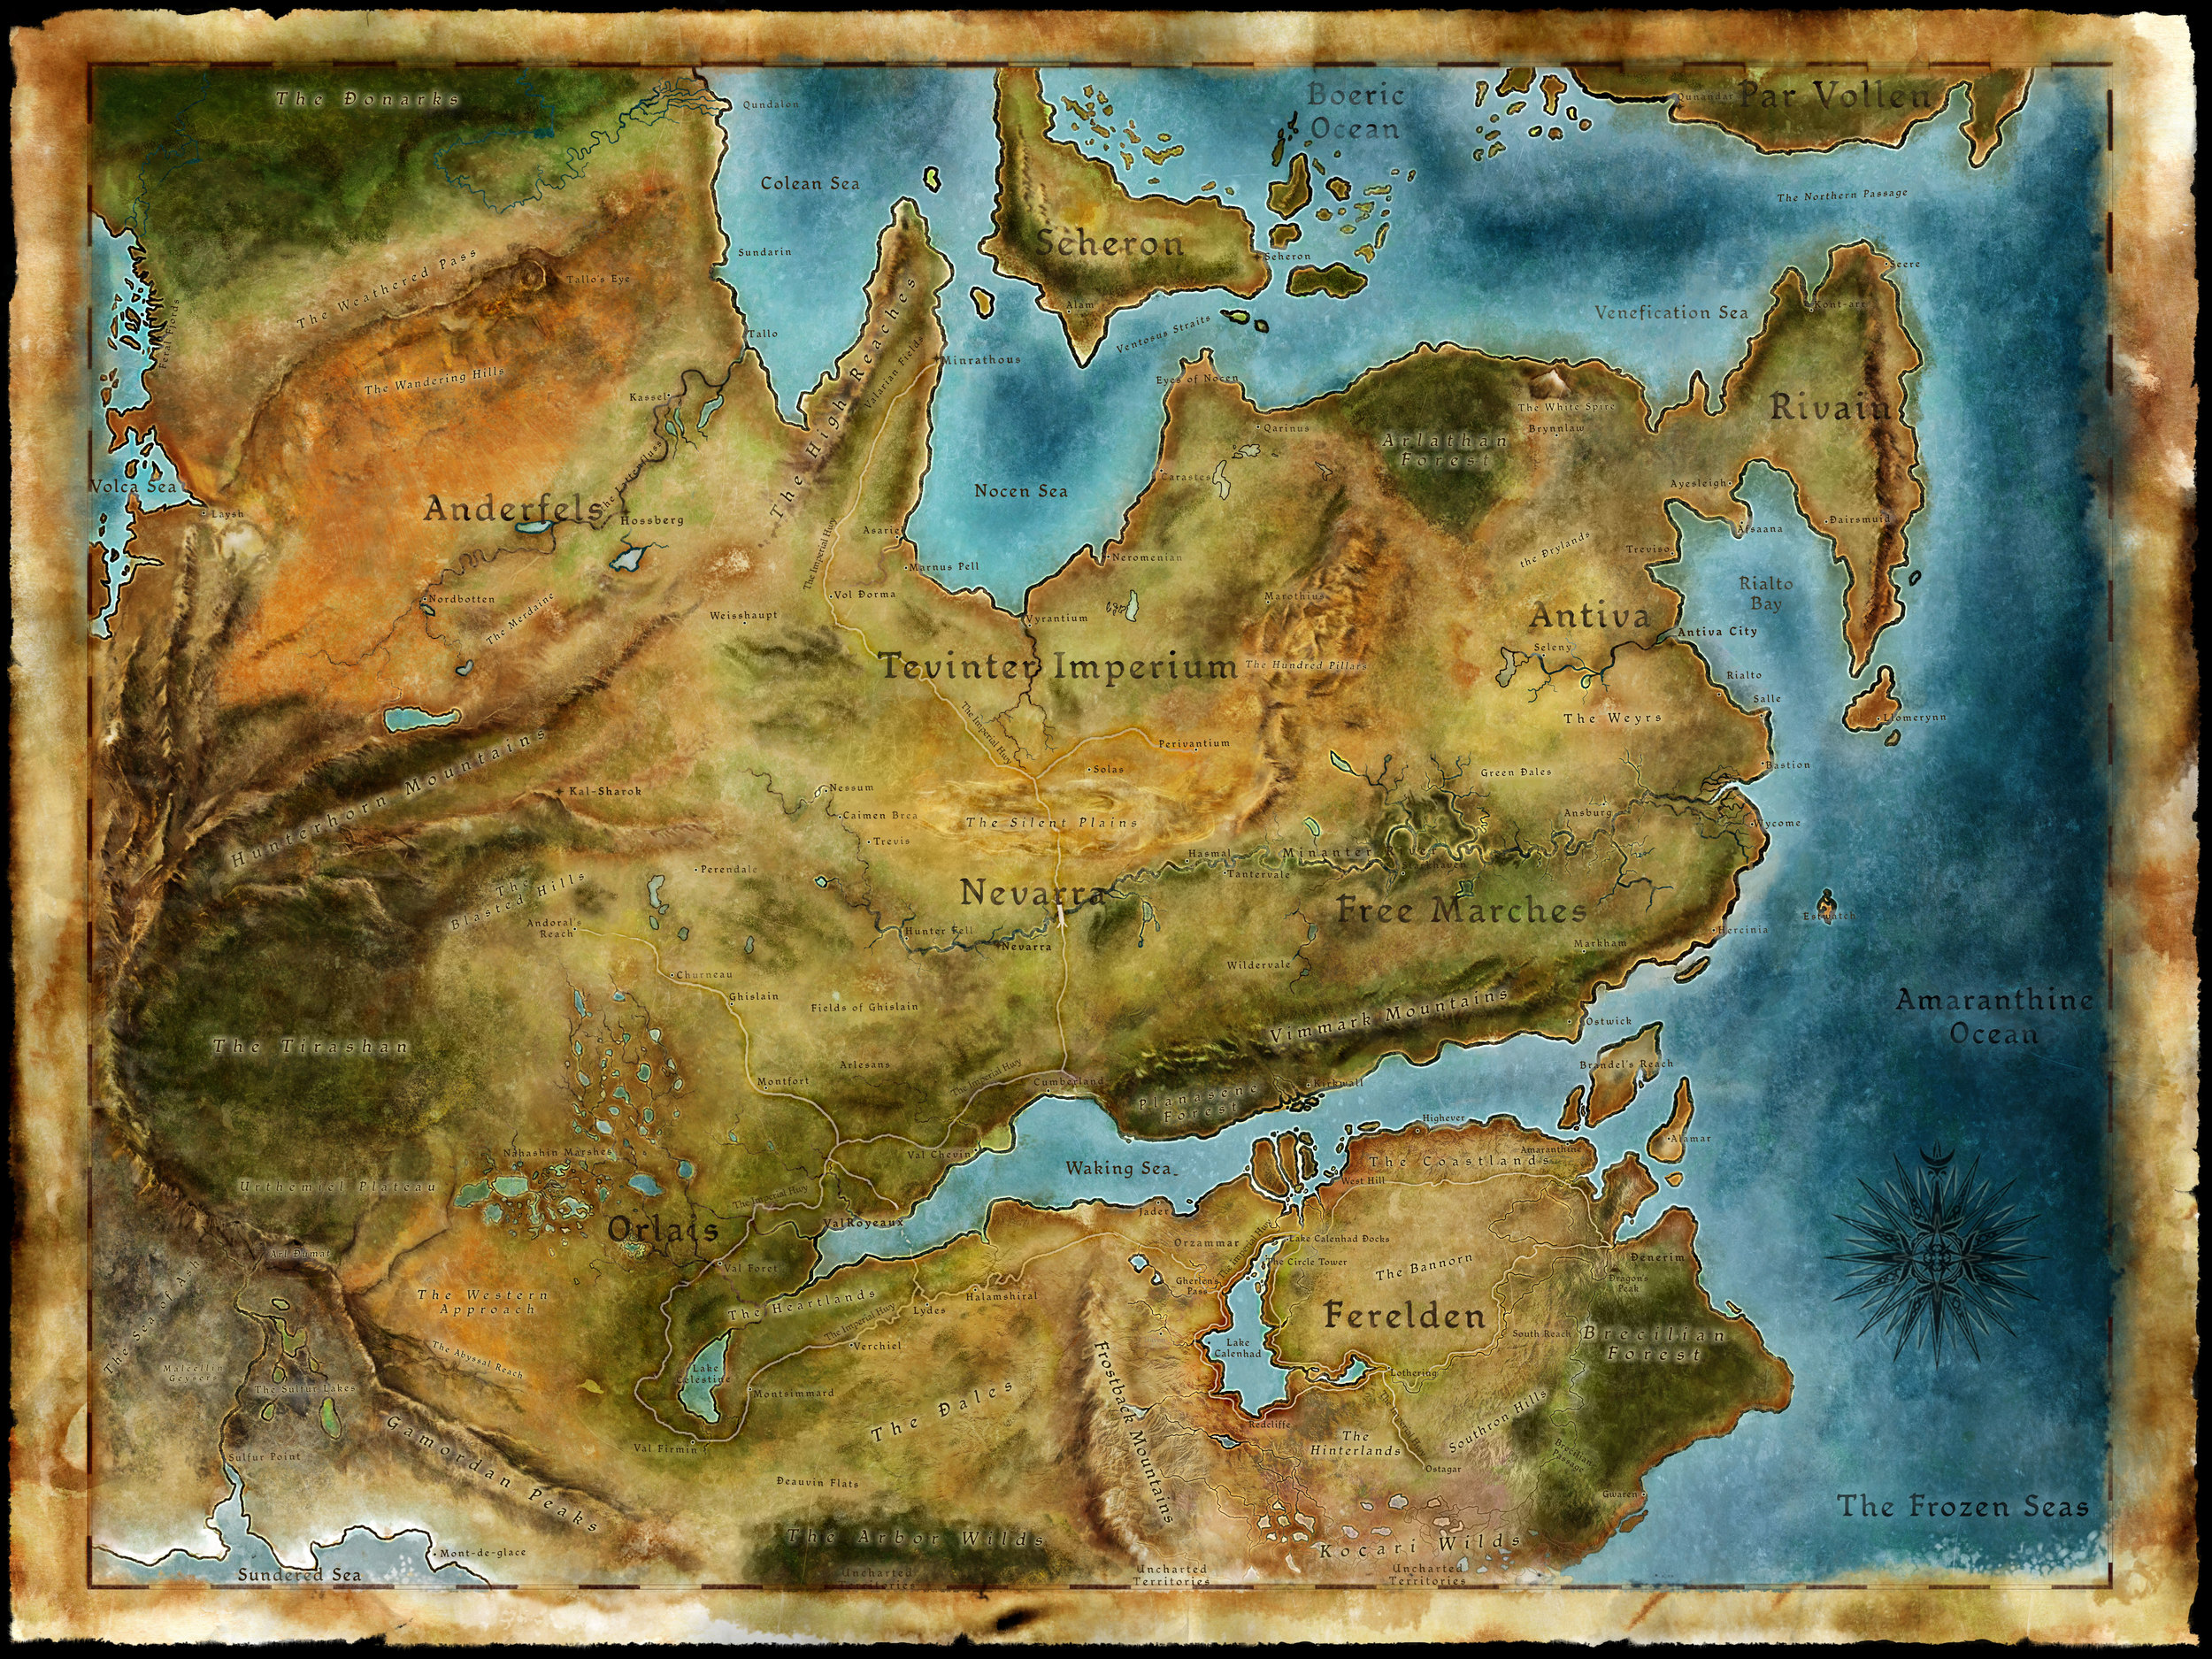 Dragon Age: Origins  took place in the Ferelden Peninsula in the South, whereas  Dragon Age 2  occurred to the North in the Free Marches, and  Dragon Age: Inquisition is set in the world as a whole.